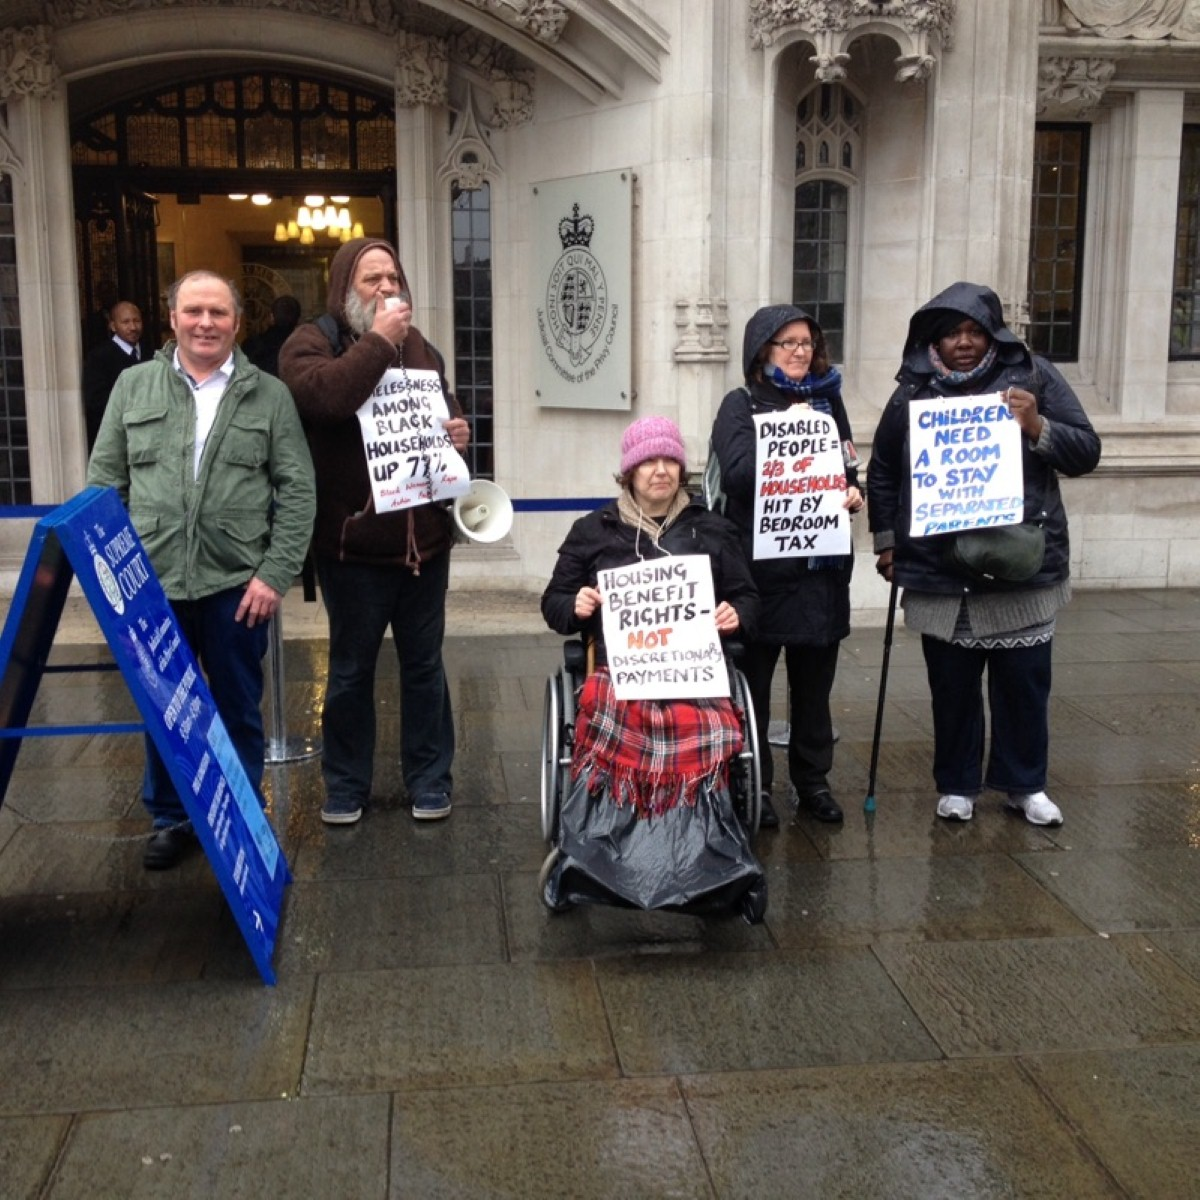 Supreme Court judges will decide if the bedroom tax discriminates against disabled people